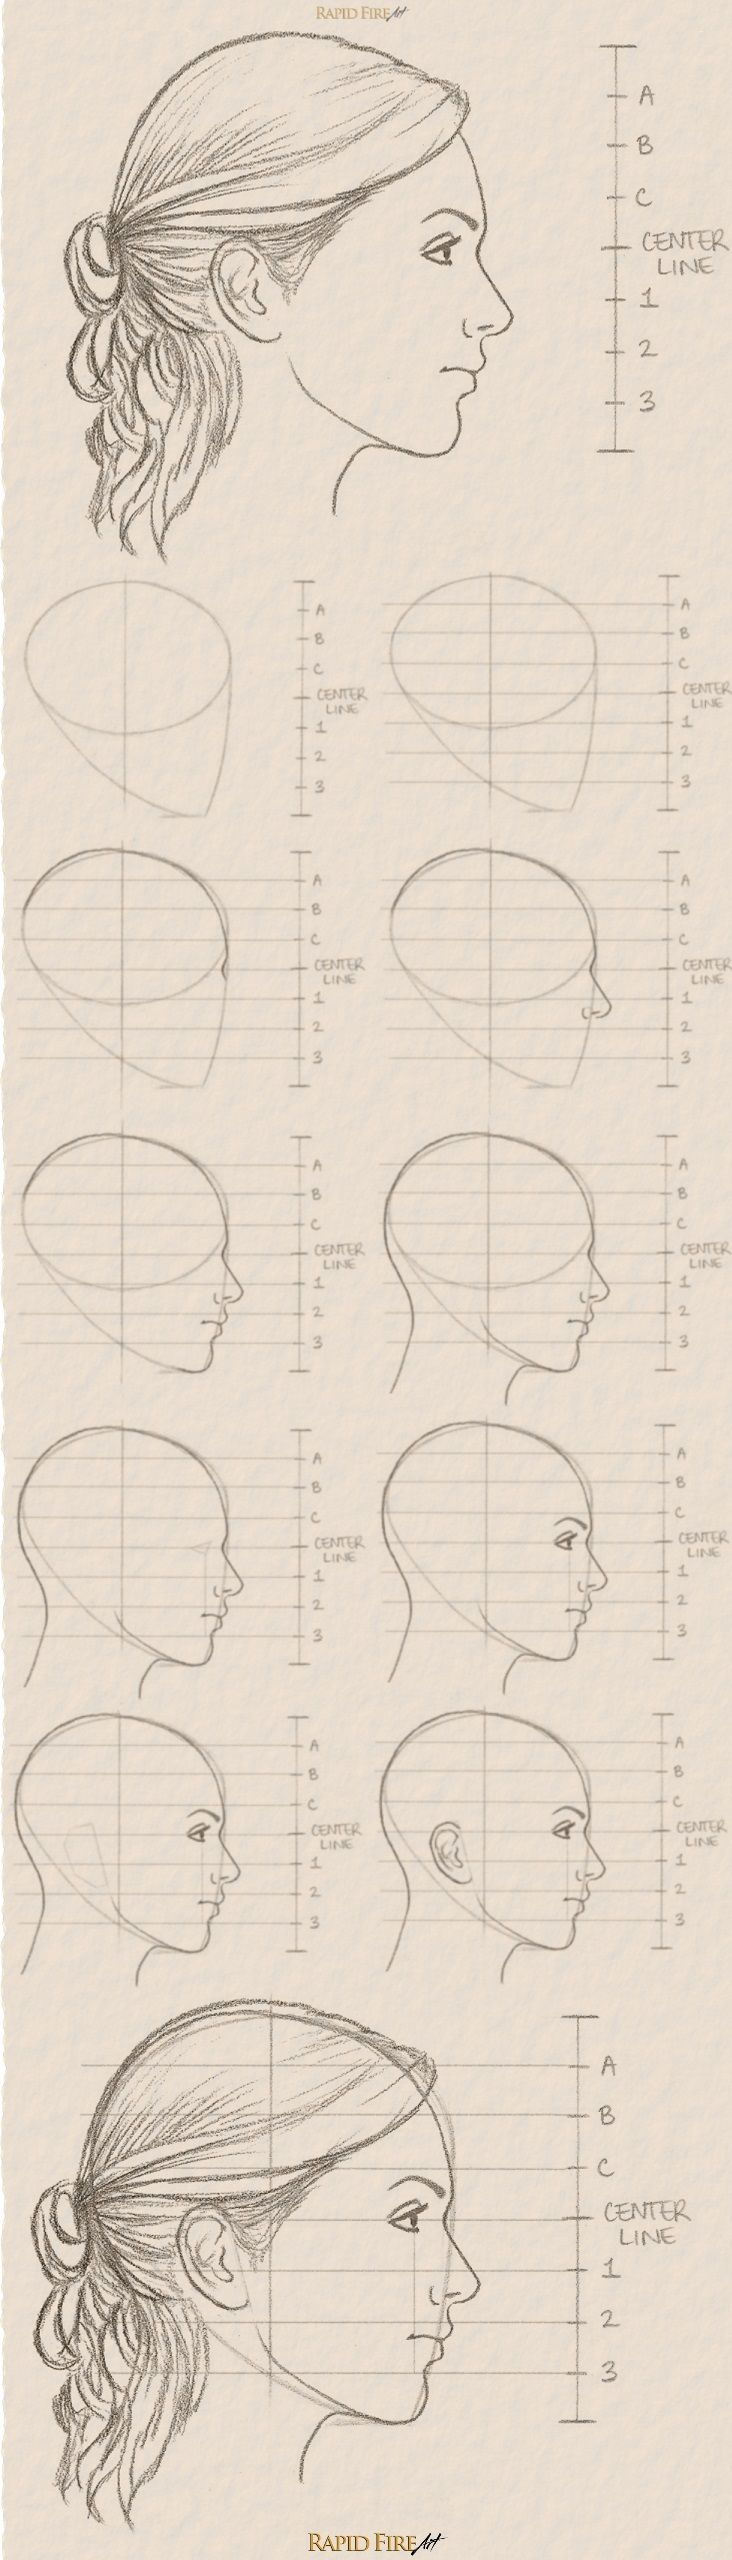 hight resolution of how to draw a female face side view how to draw a face pencil drawings drawing techniques drawing tips